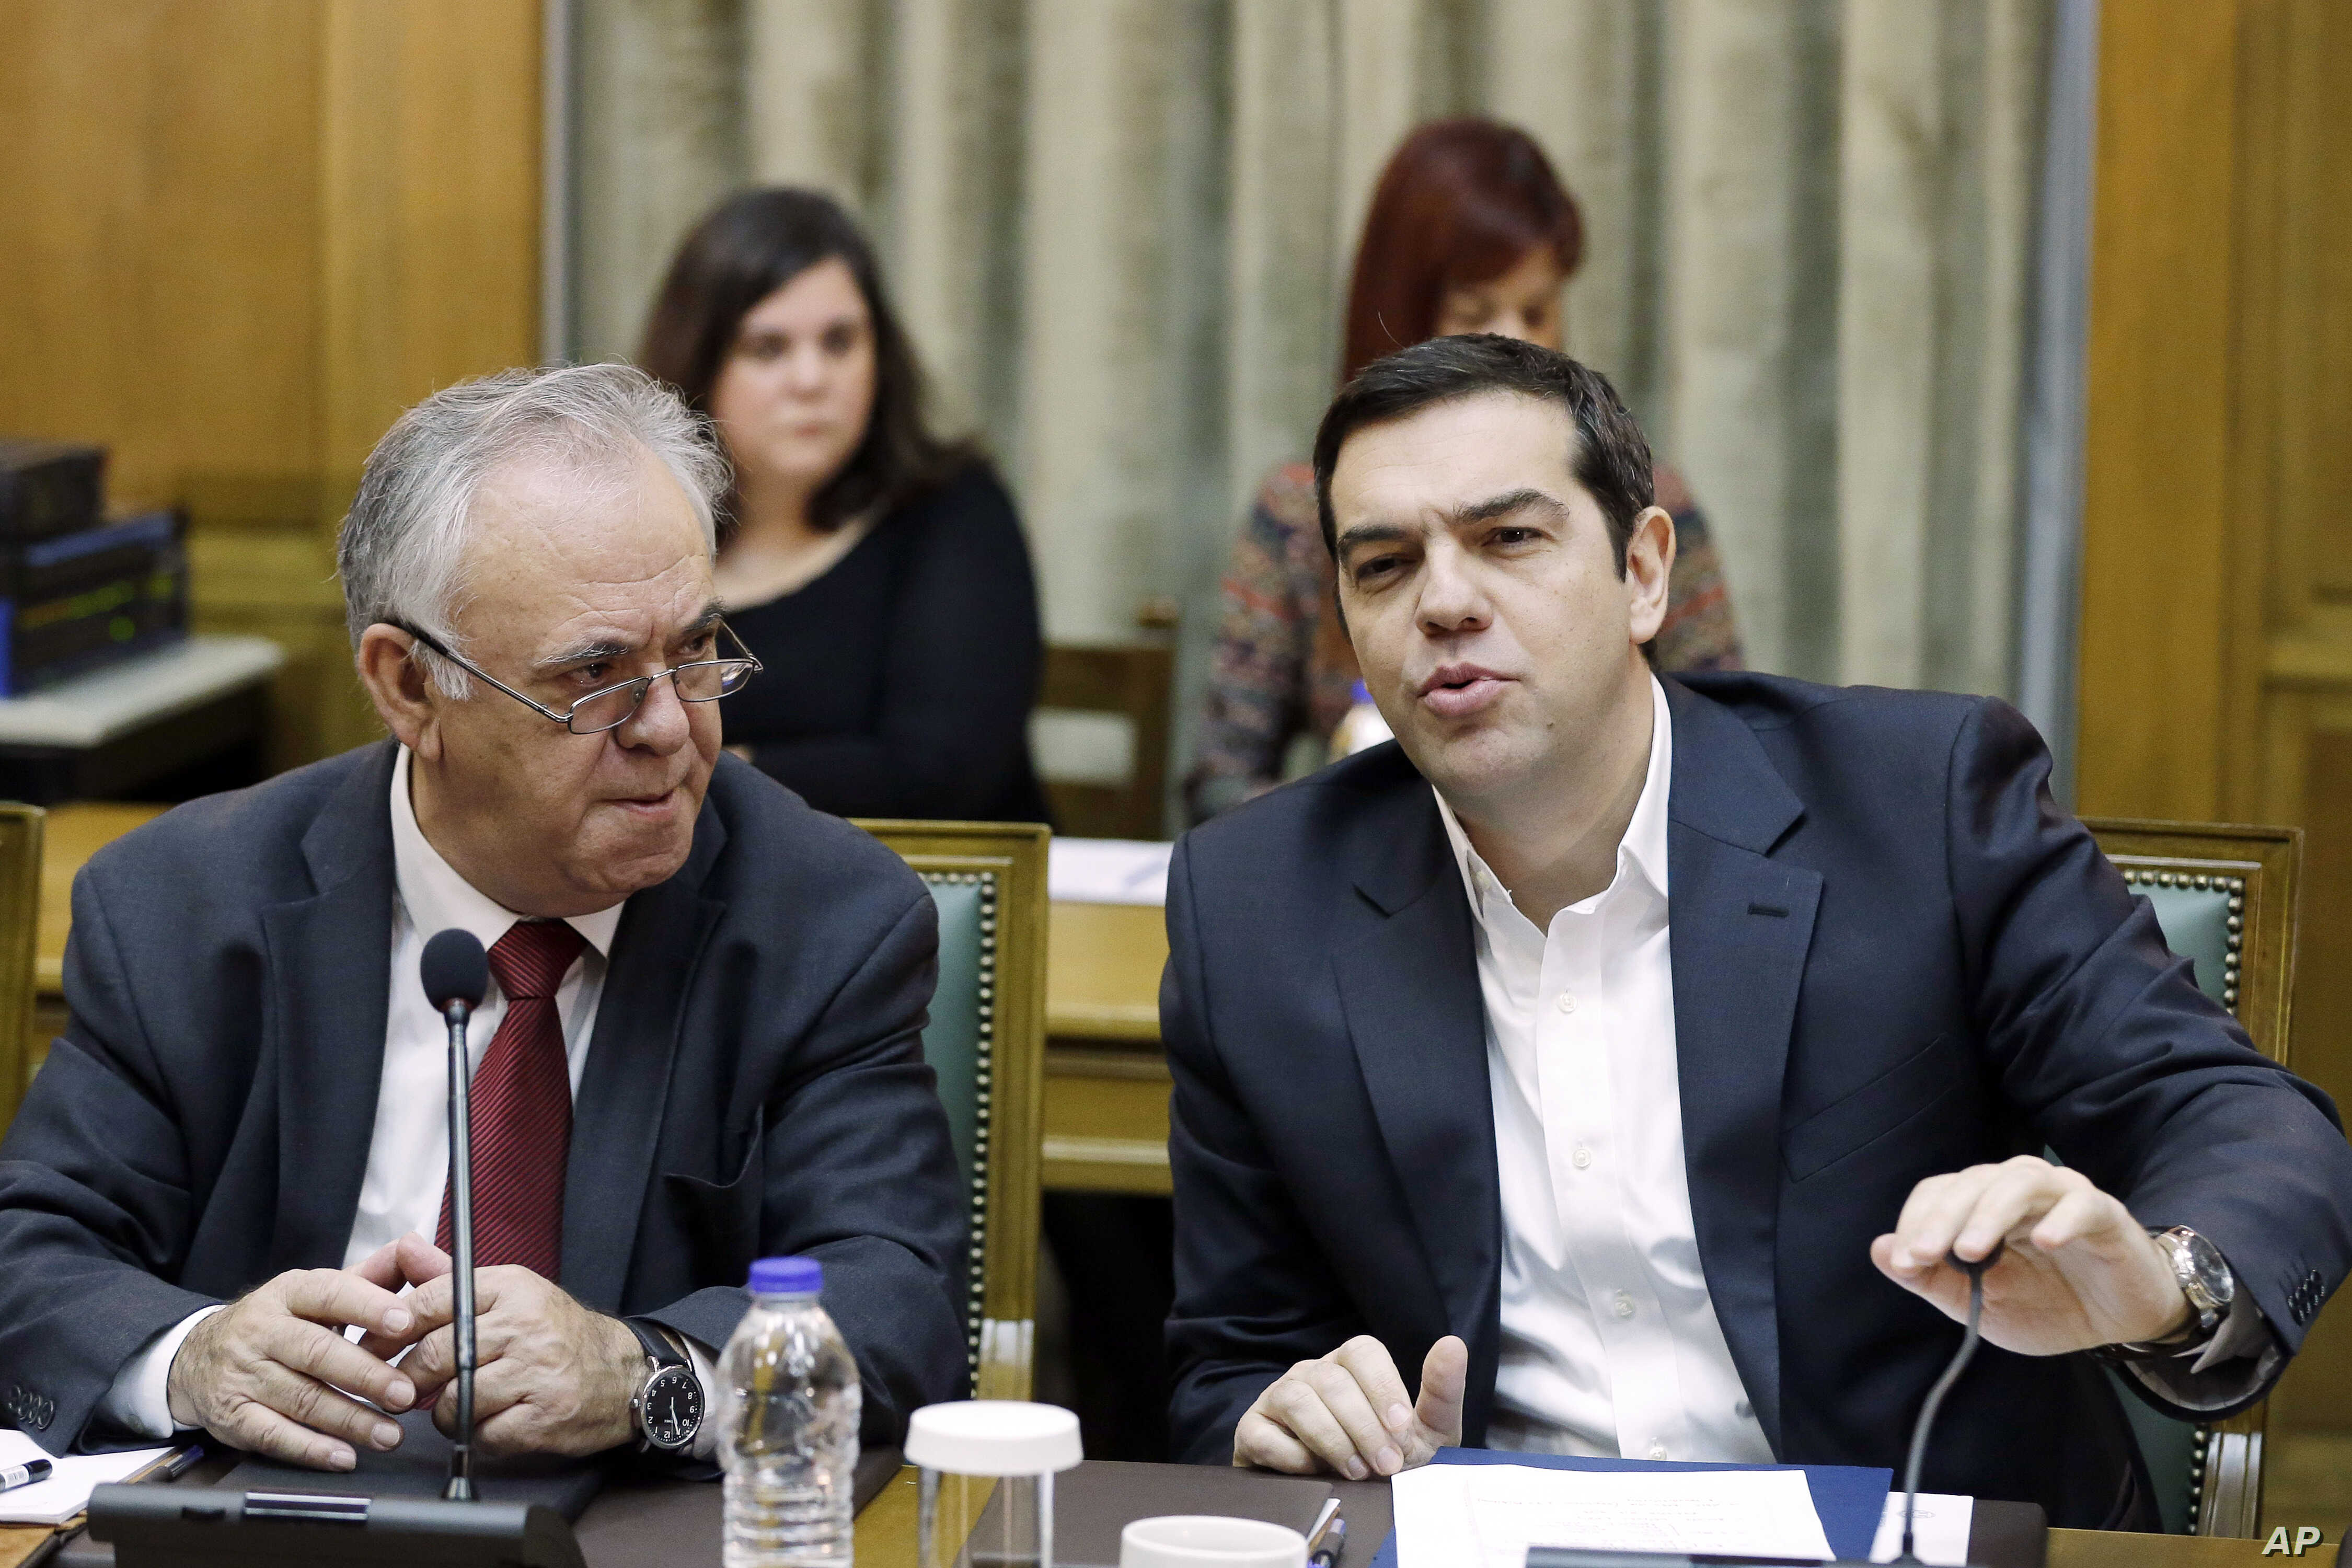 Greece's Prime Minister Alexis Tsipras, right, speaks during a cabinet meeting as Deputy Prime Minister Yannis Dragasakis listens to him in Athens, Nov. 10, 2015.